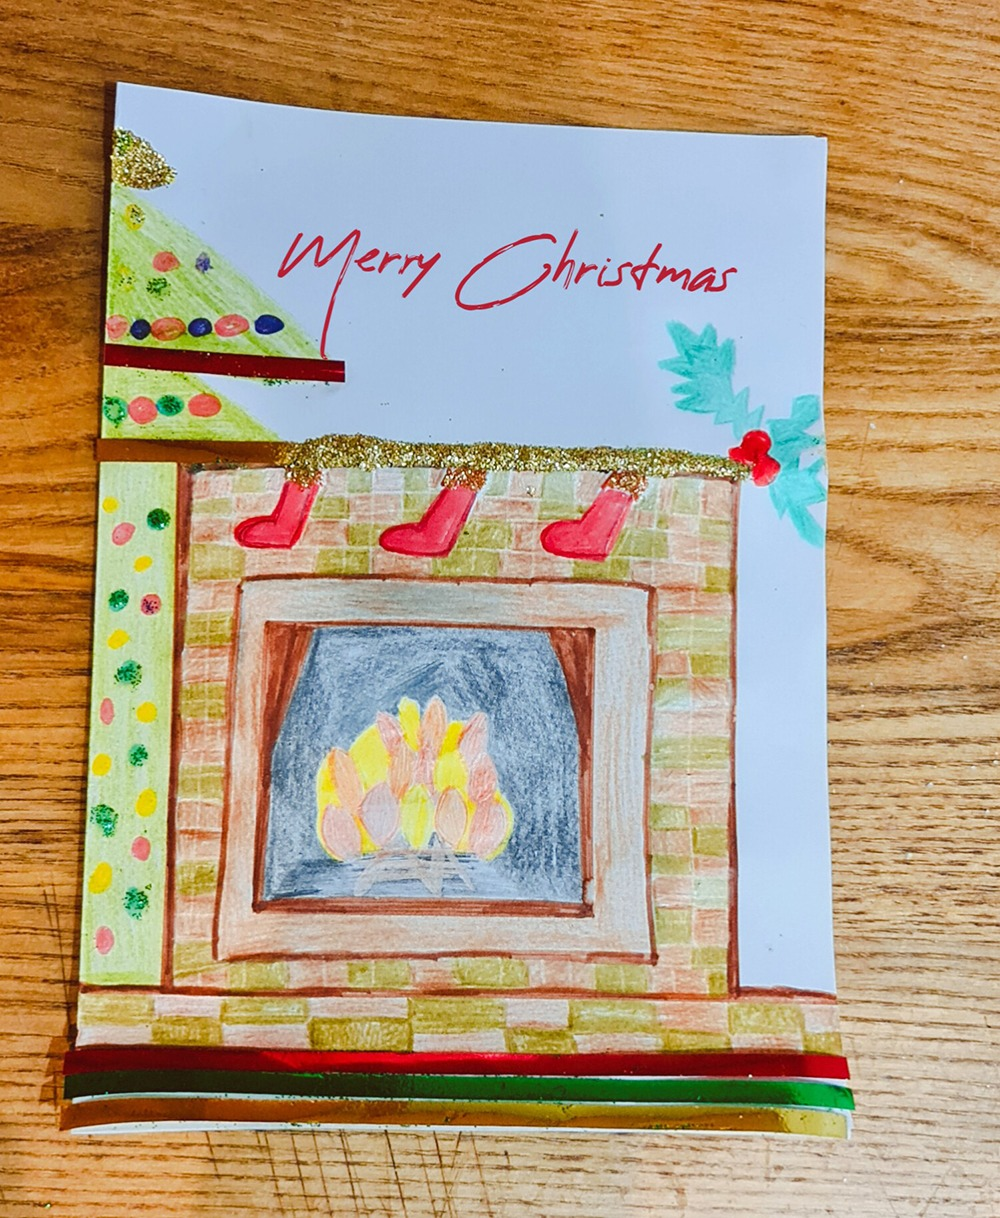 Pebbles Christmas card design competition 2020 Amy Gaines Cobbledyke